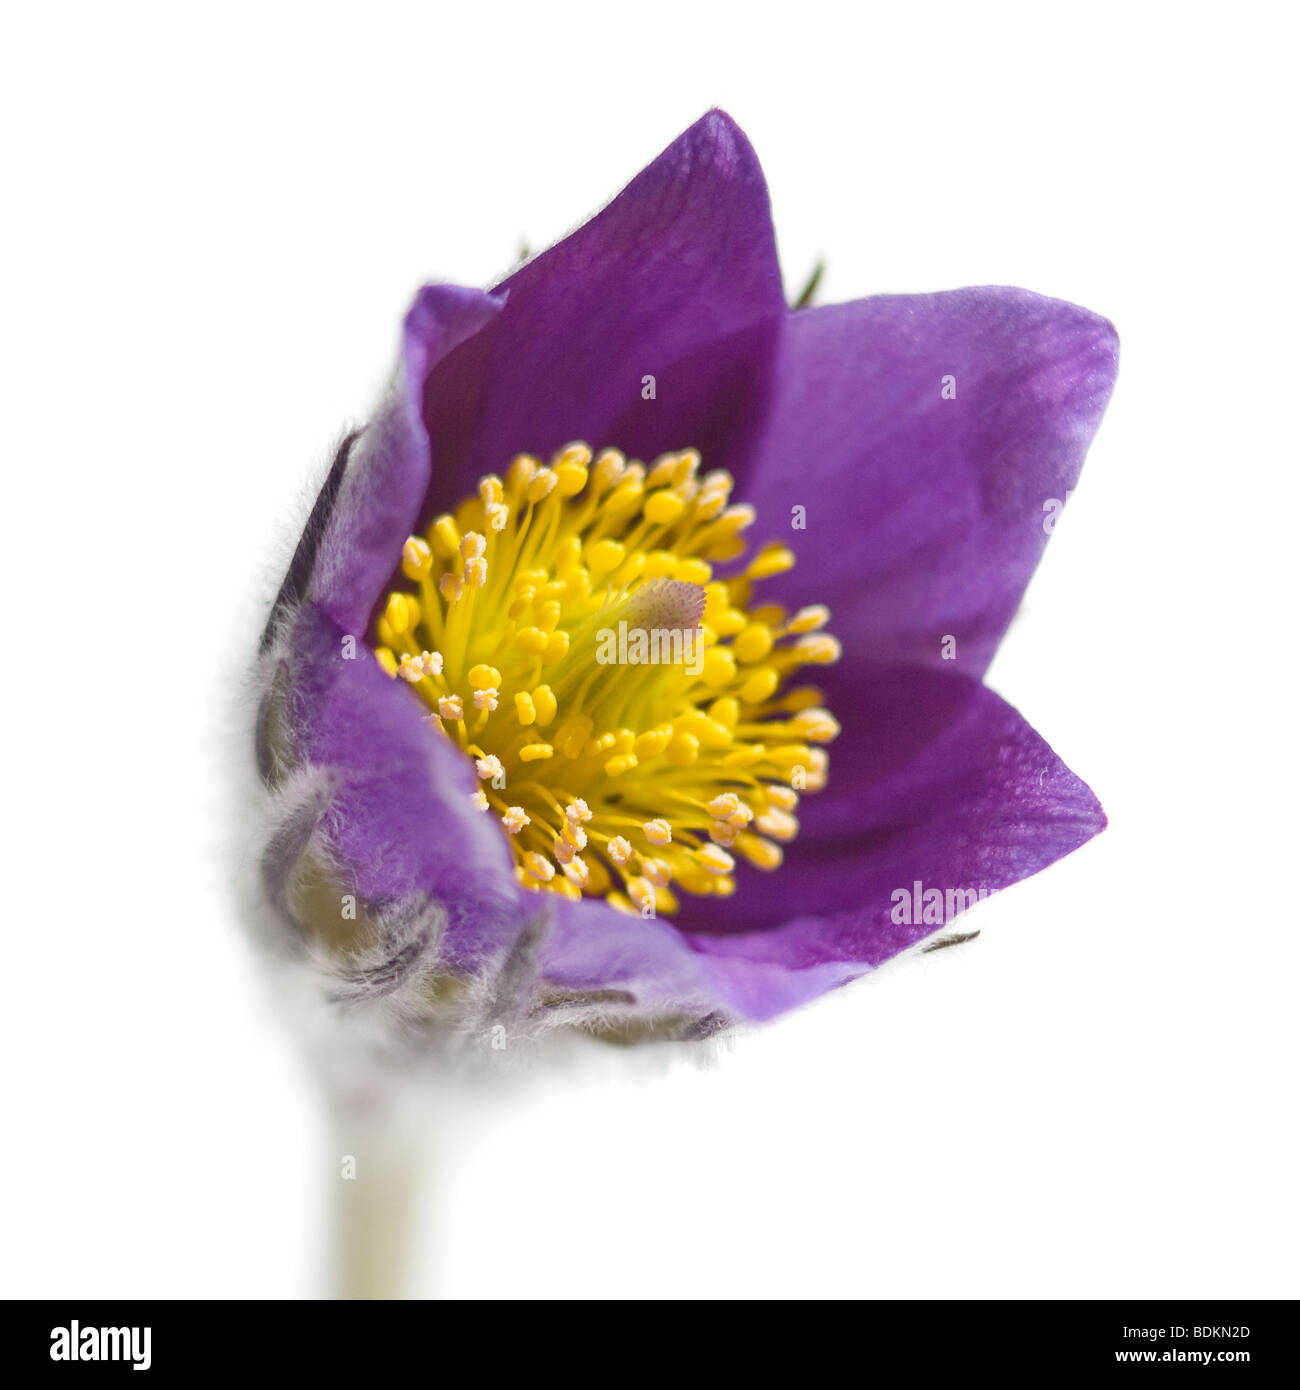 Macro shot of pasque flower or Pulsatilla early violet spring flower - Stock Image